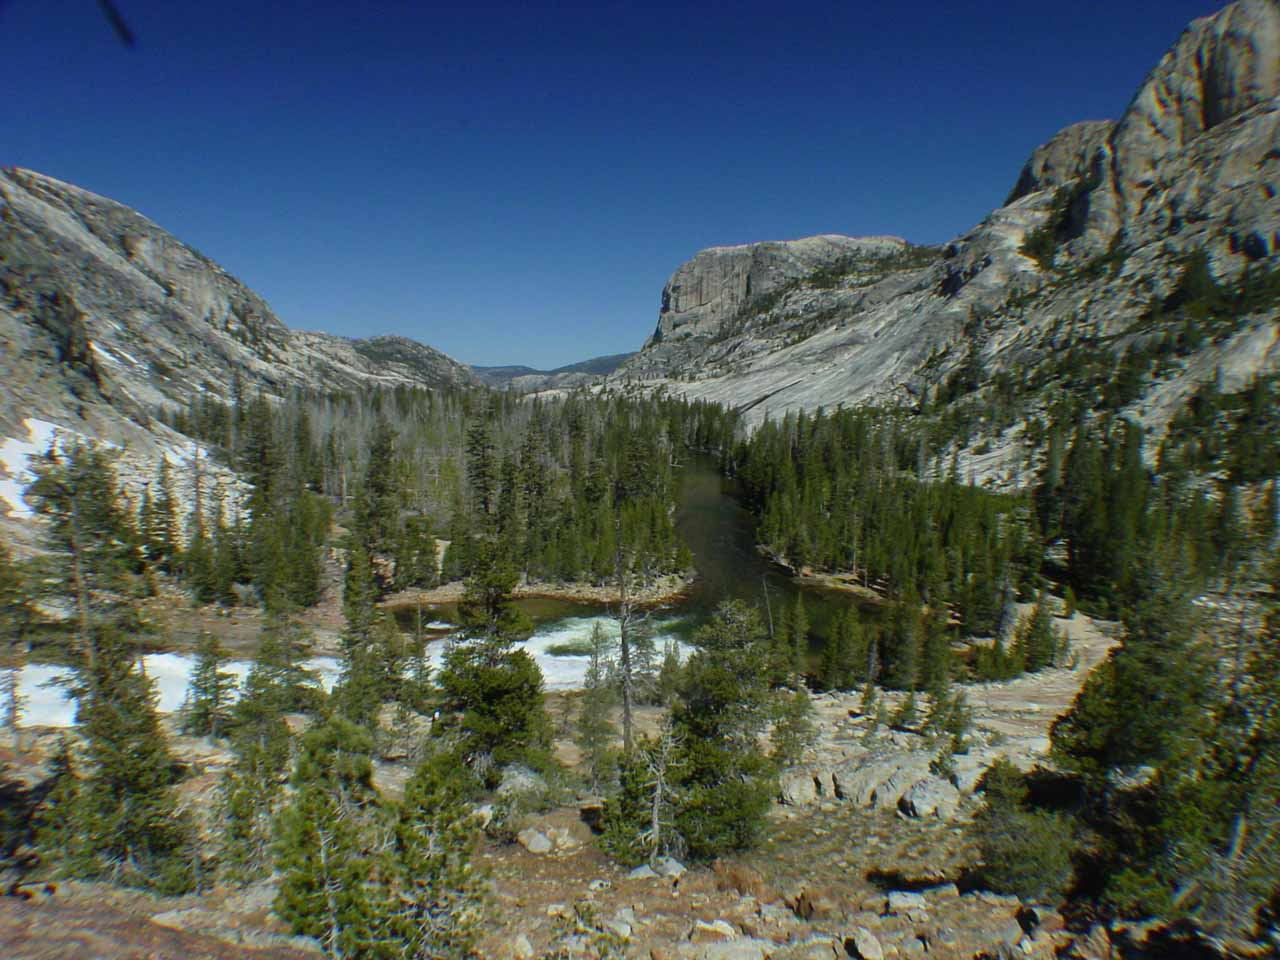 Panoramic view of the Tuolumne River just downstream from the Glen Aulin High Sierra Camp